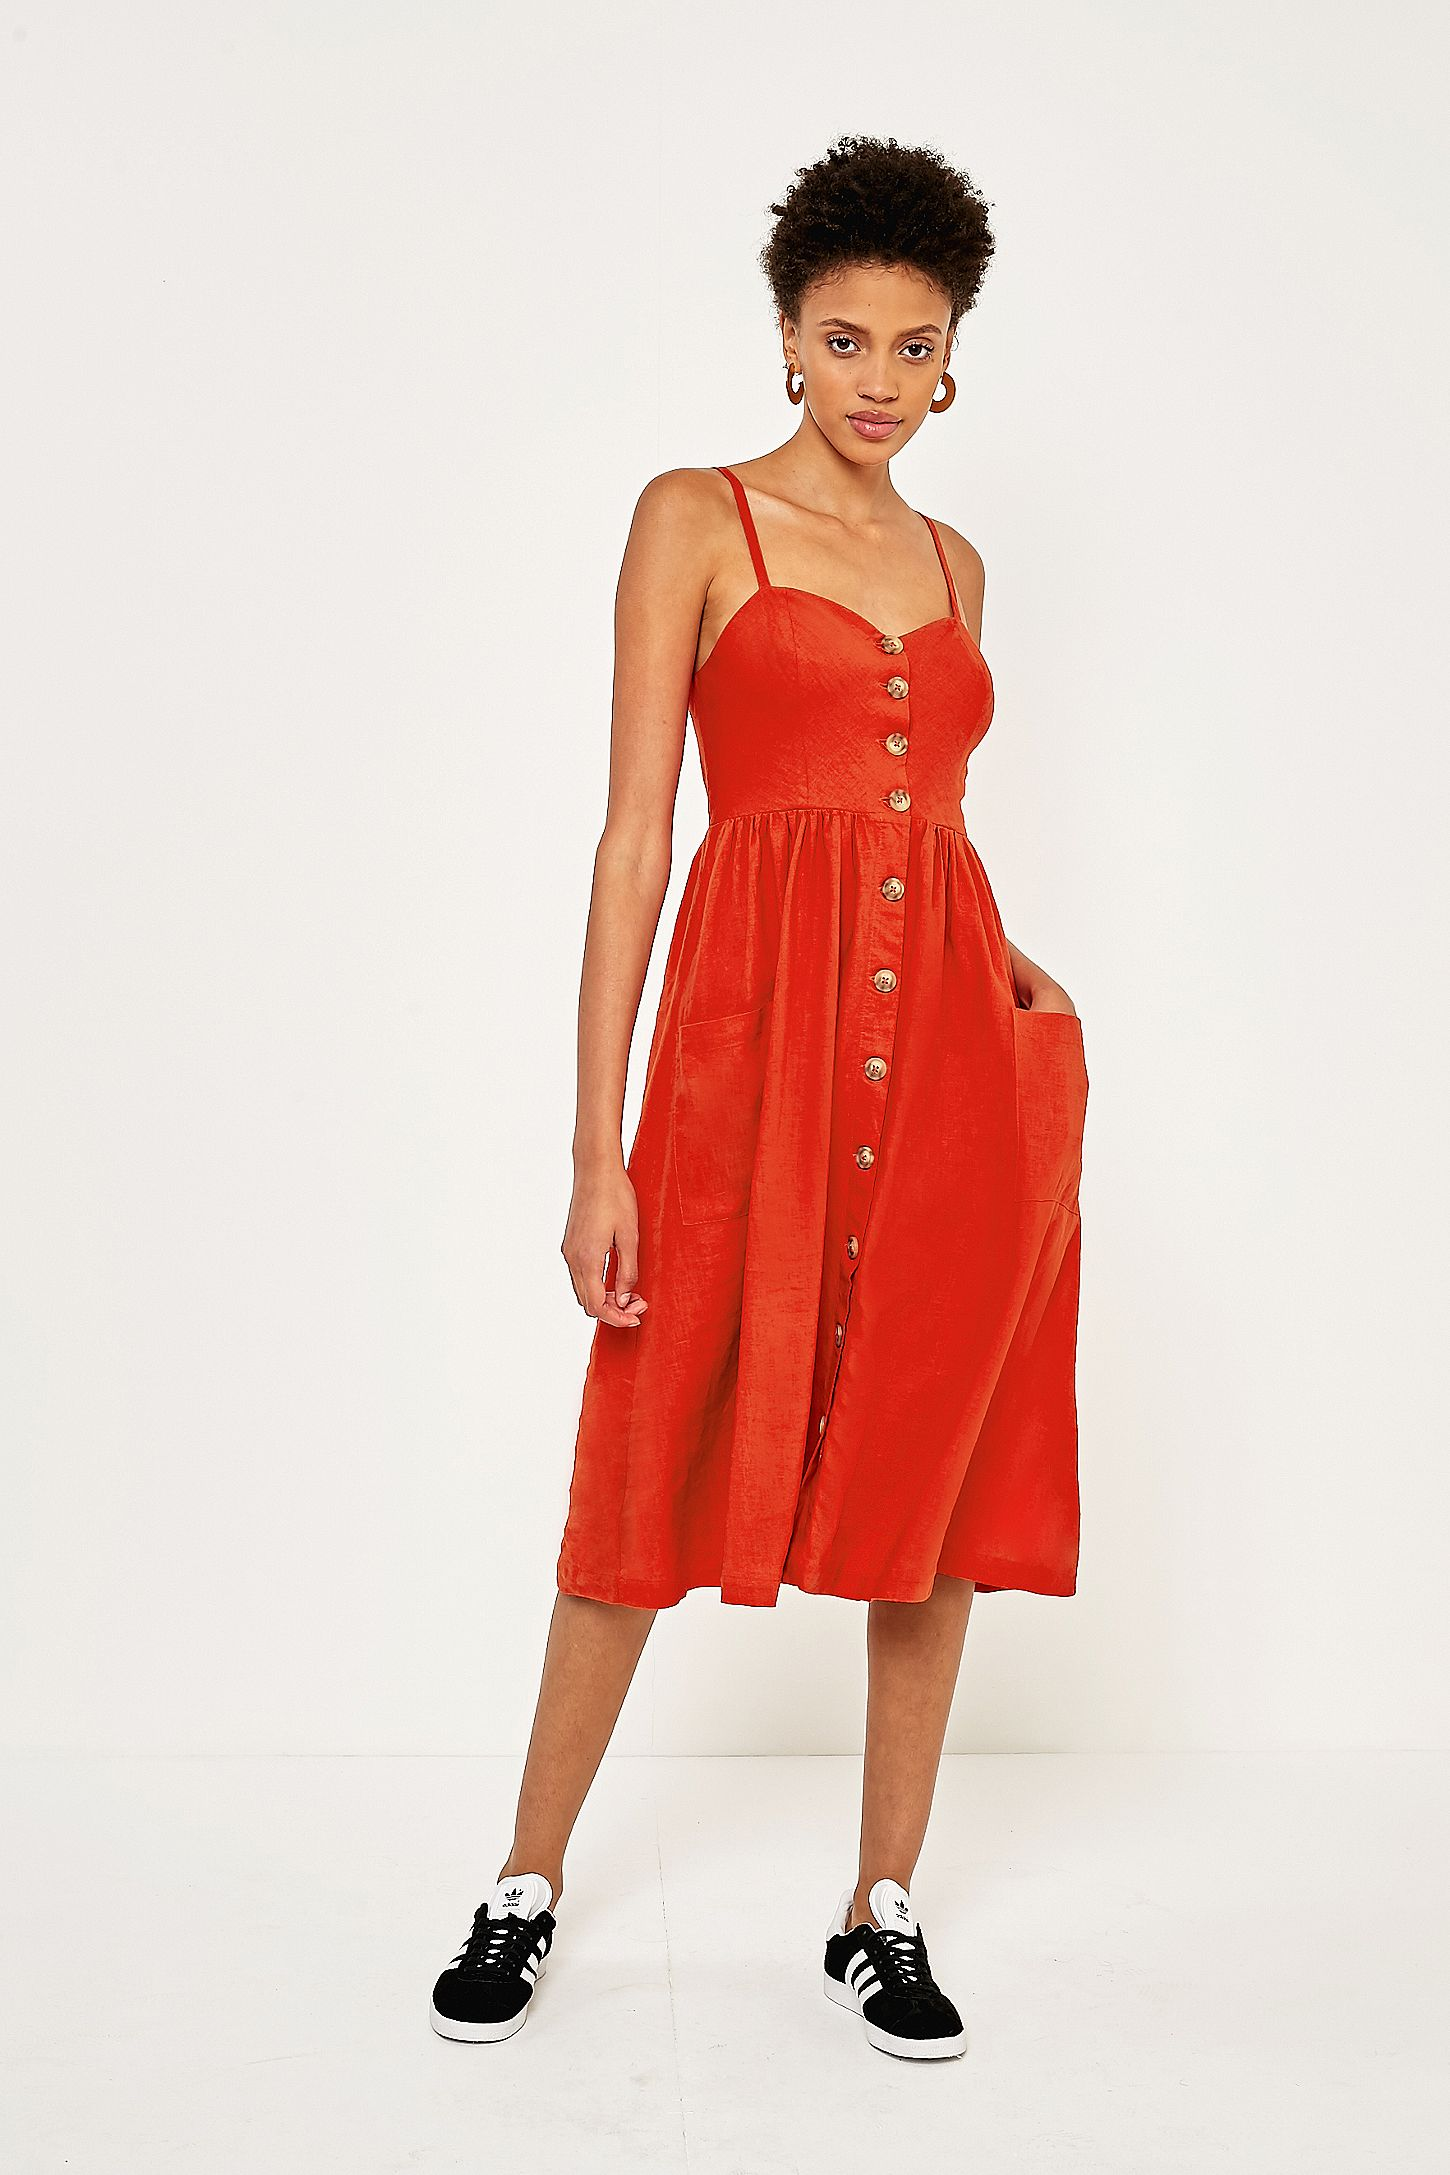 708743f31d8 Urban Outfitters Emilia Red Linen Button Down Midi Dress. Click on image to  zoom. Hover to zoom. Double Tap to Zoom